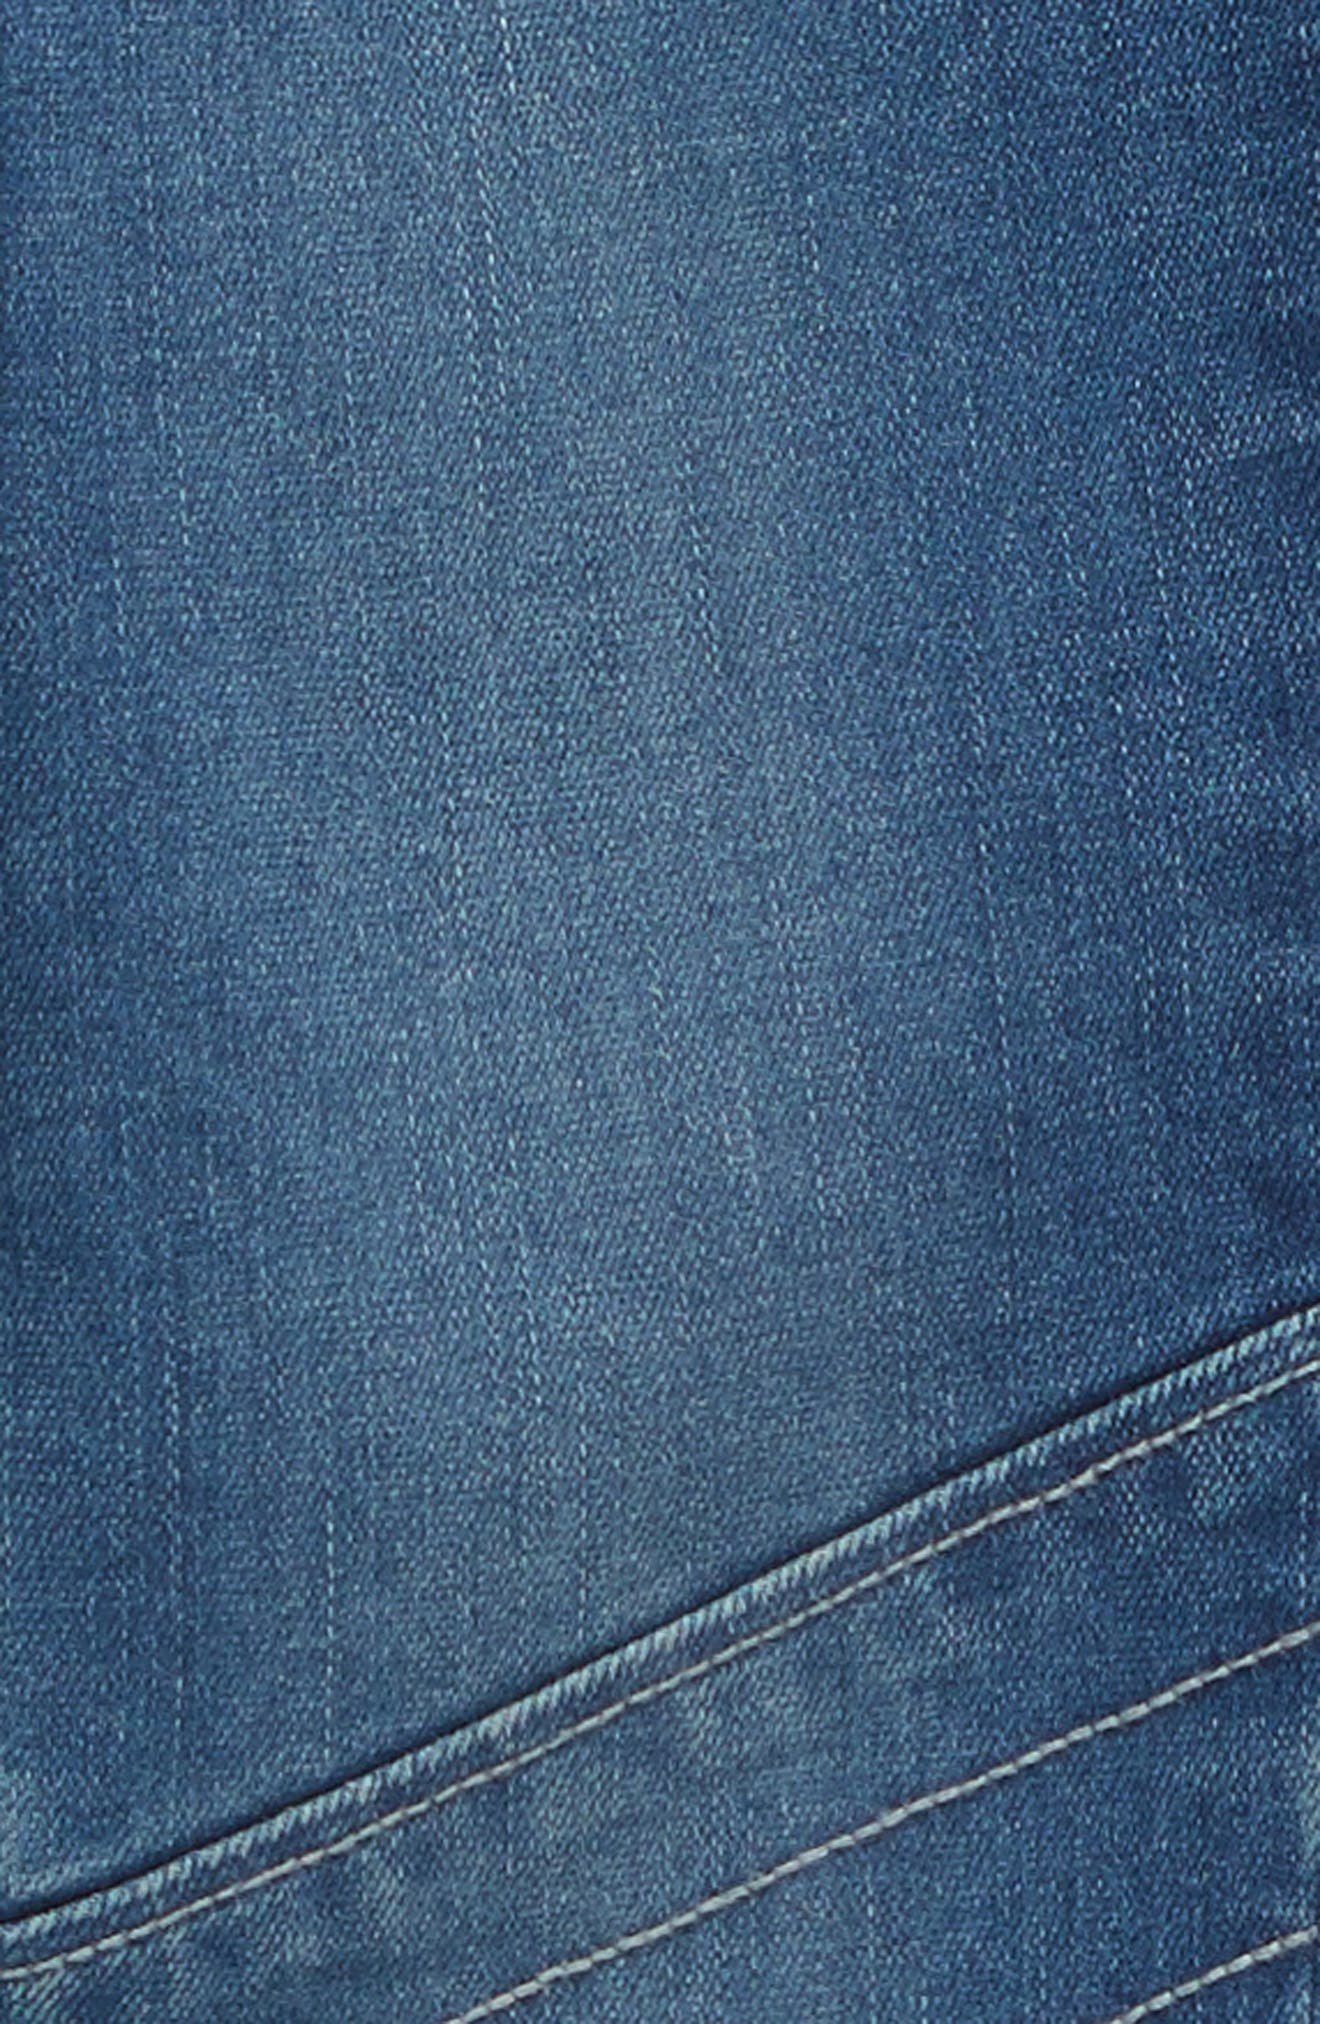 Denim Moto Leggings,                             Alternate thumbnail 3, color,